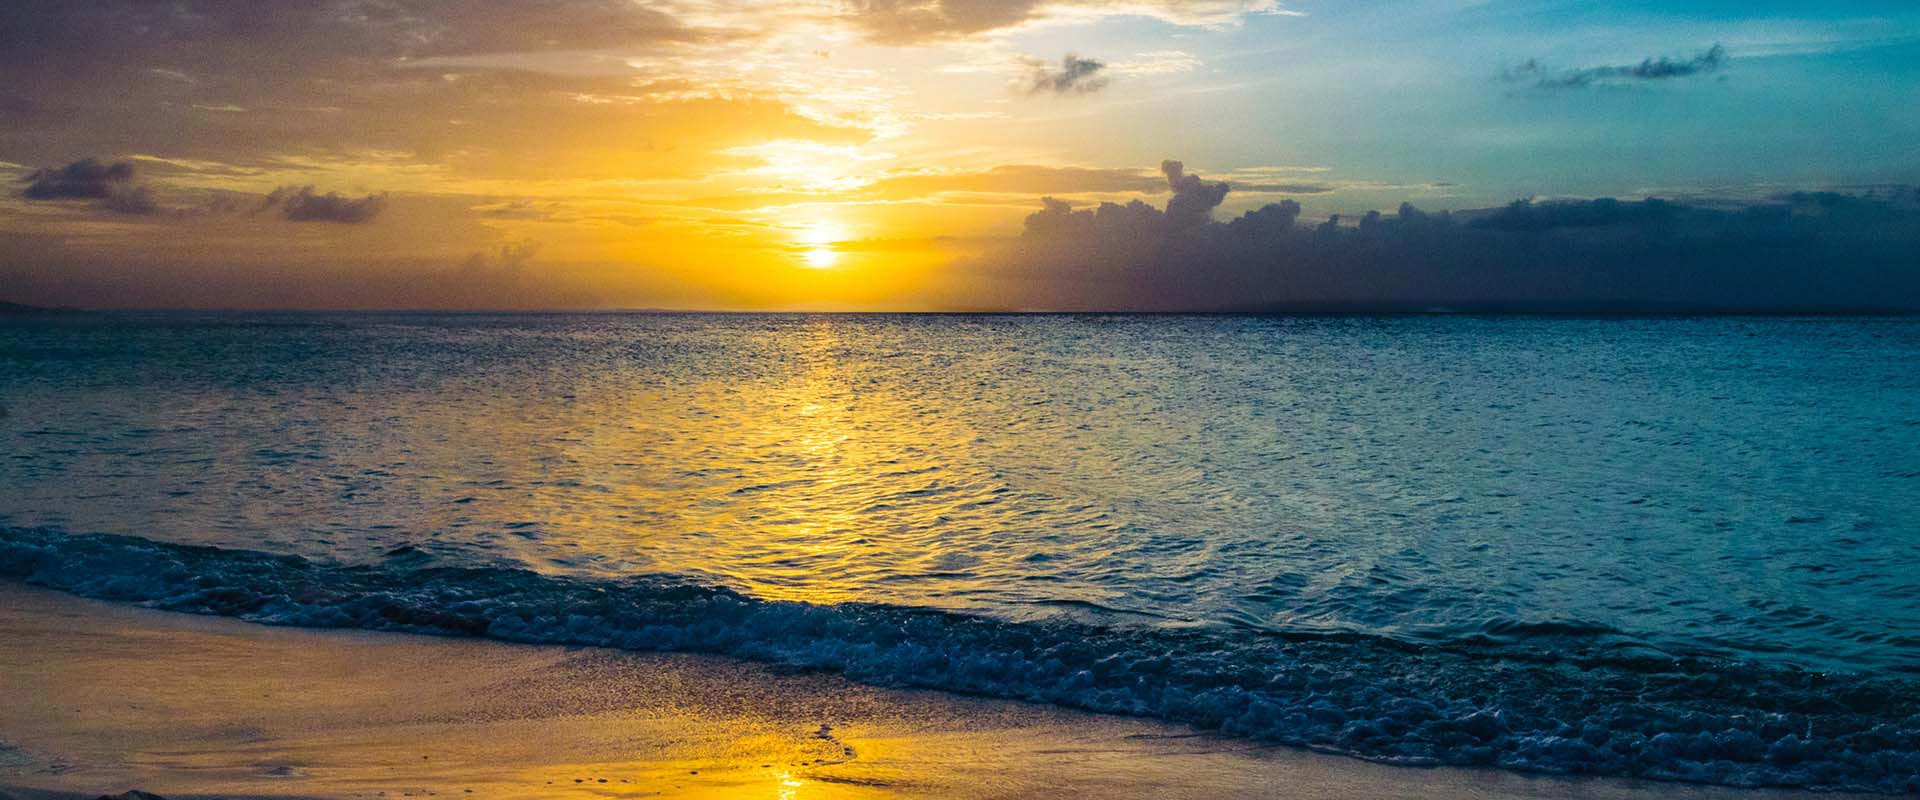 Easter 2020 And 2021 In Turks And Caicos Islands